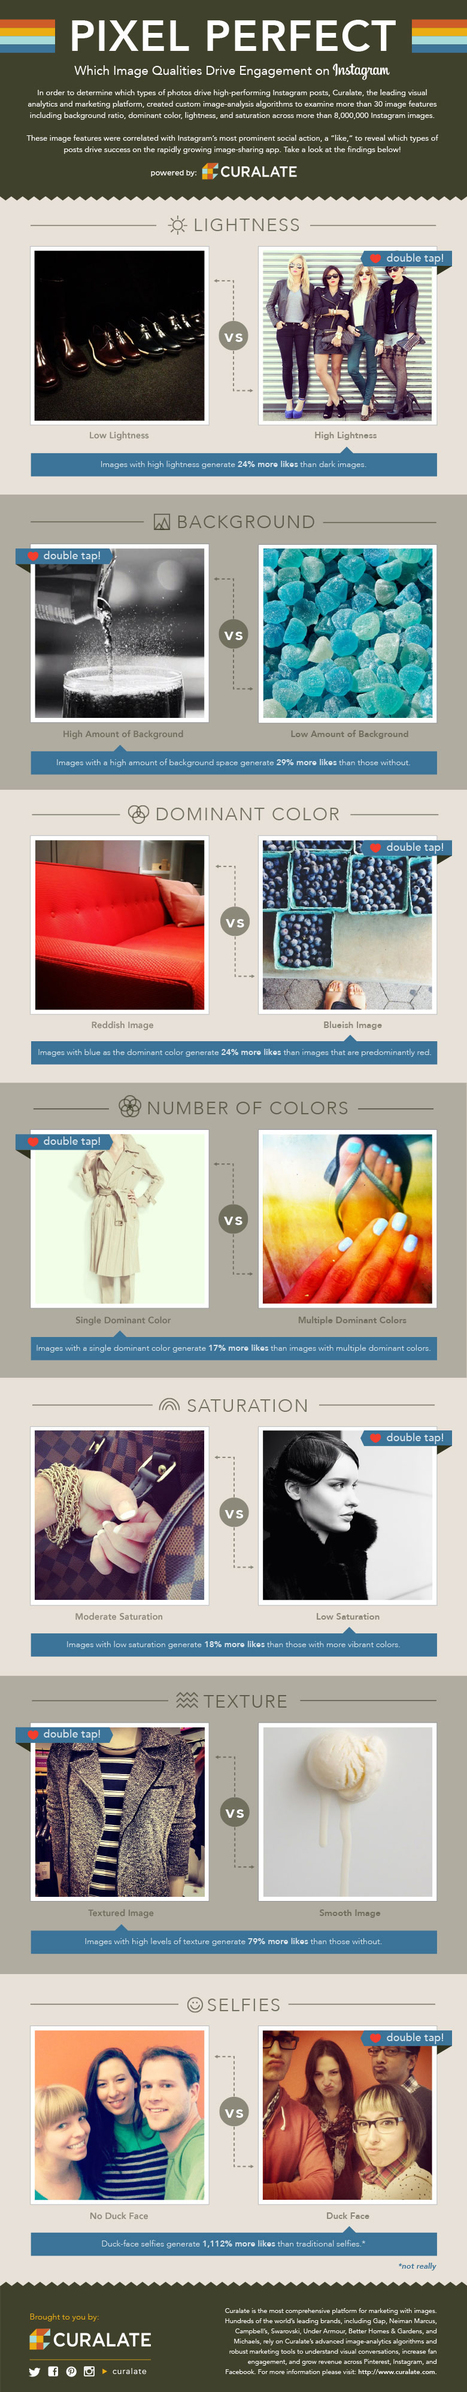 7 Tips To Instagram Photos That Will Get You More Likes (Infographic) | SocialMedia_me | Scoop.it